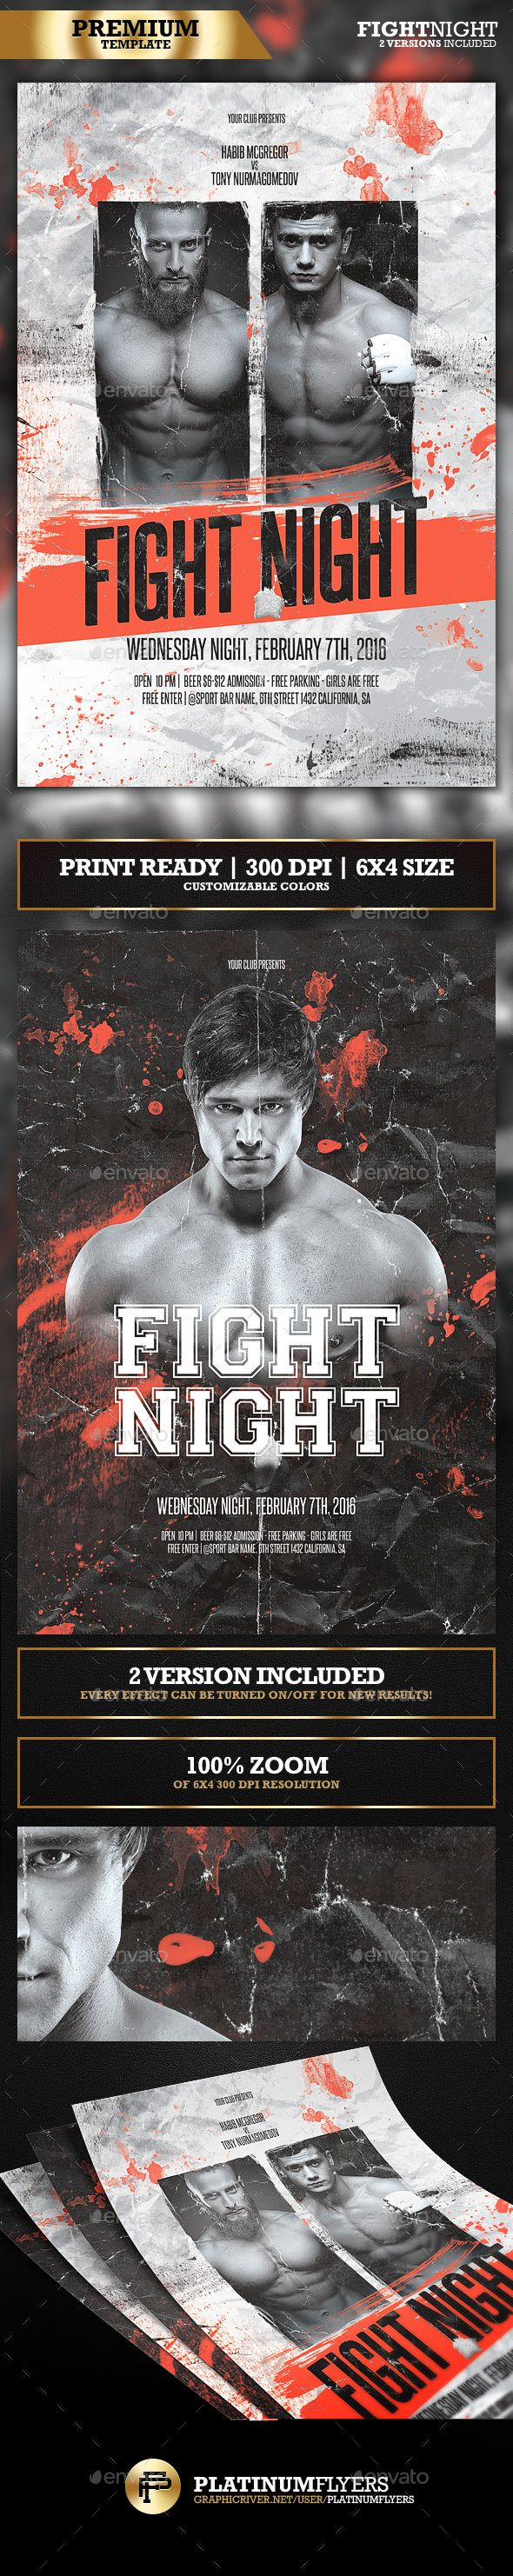 MMA Flyer,  Fight Night Flyer,   Boxing Fight Flyer,  UFC Flyer